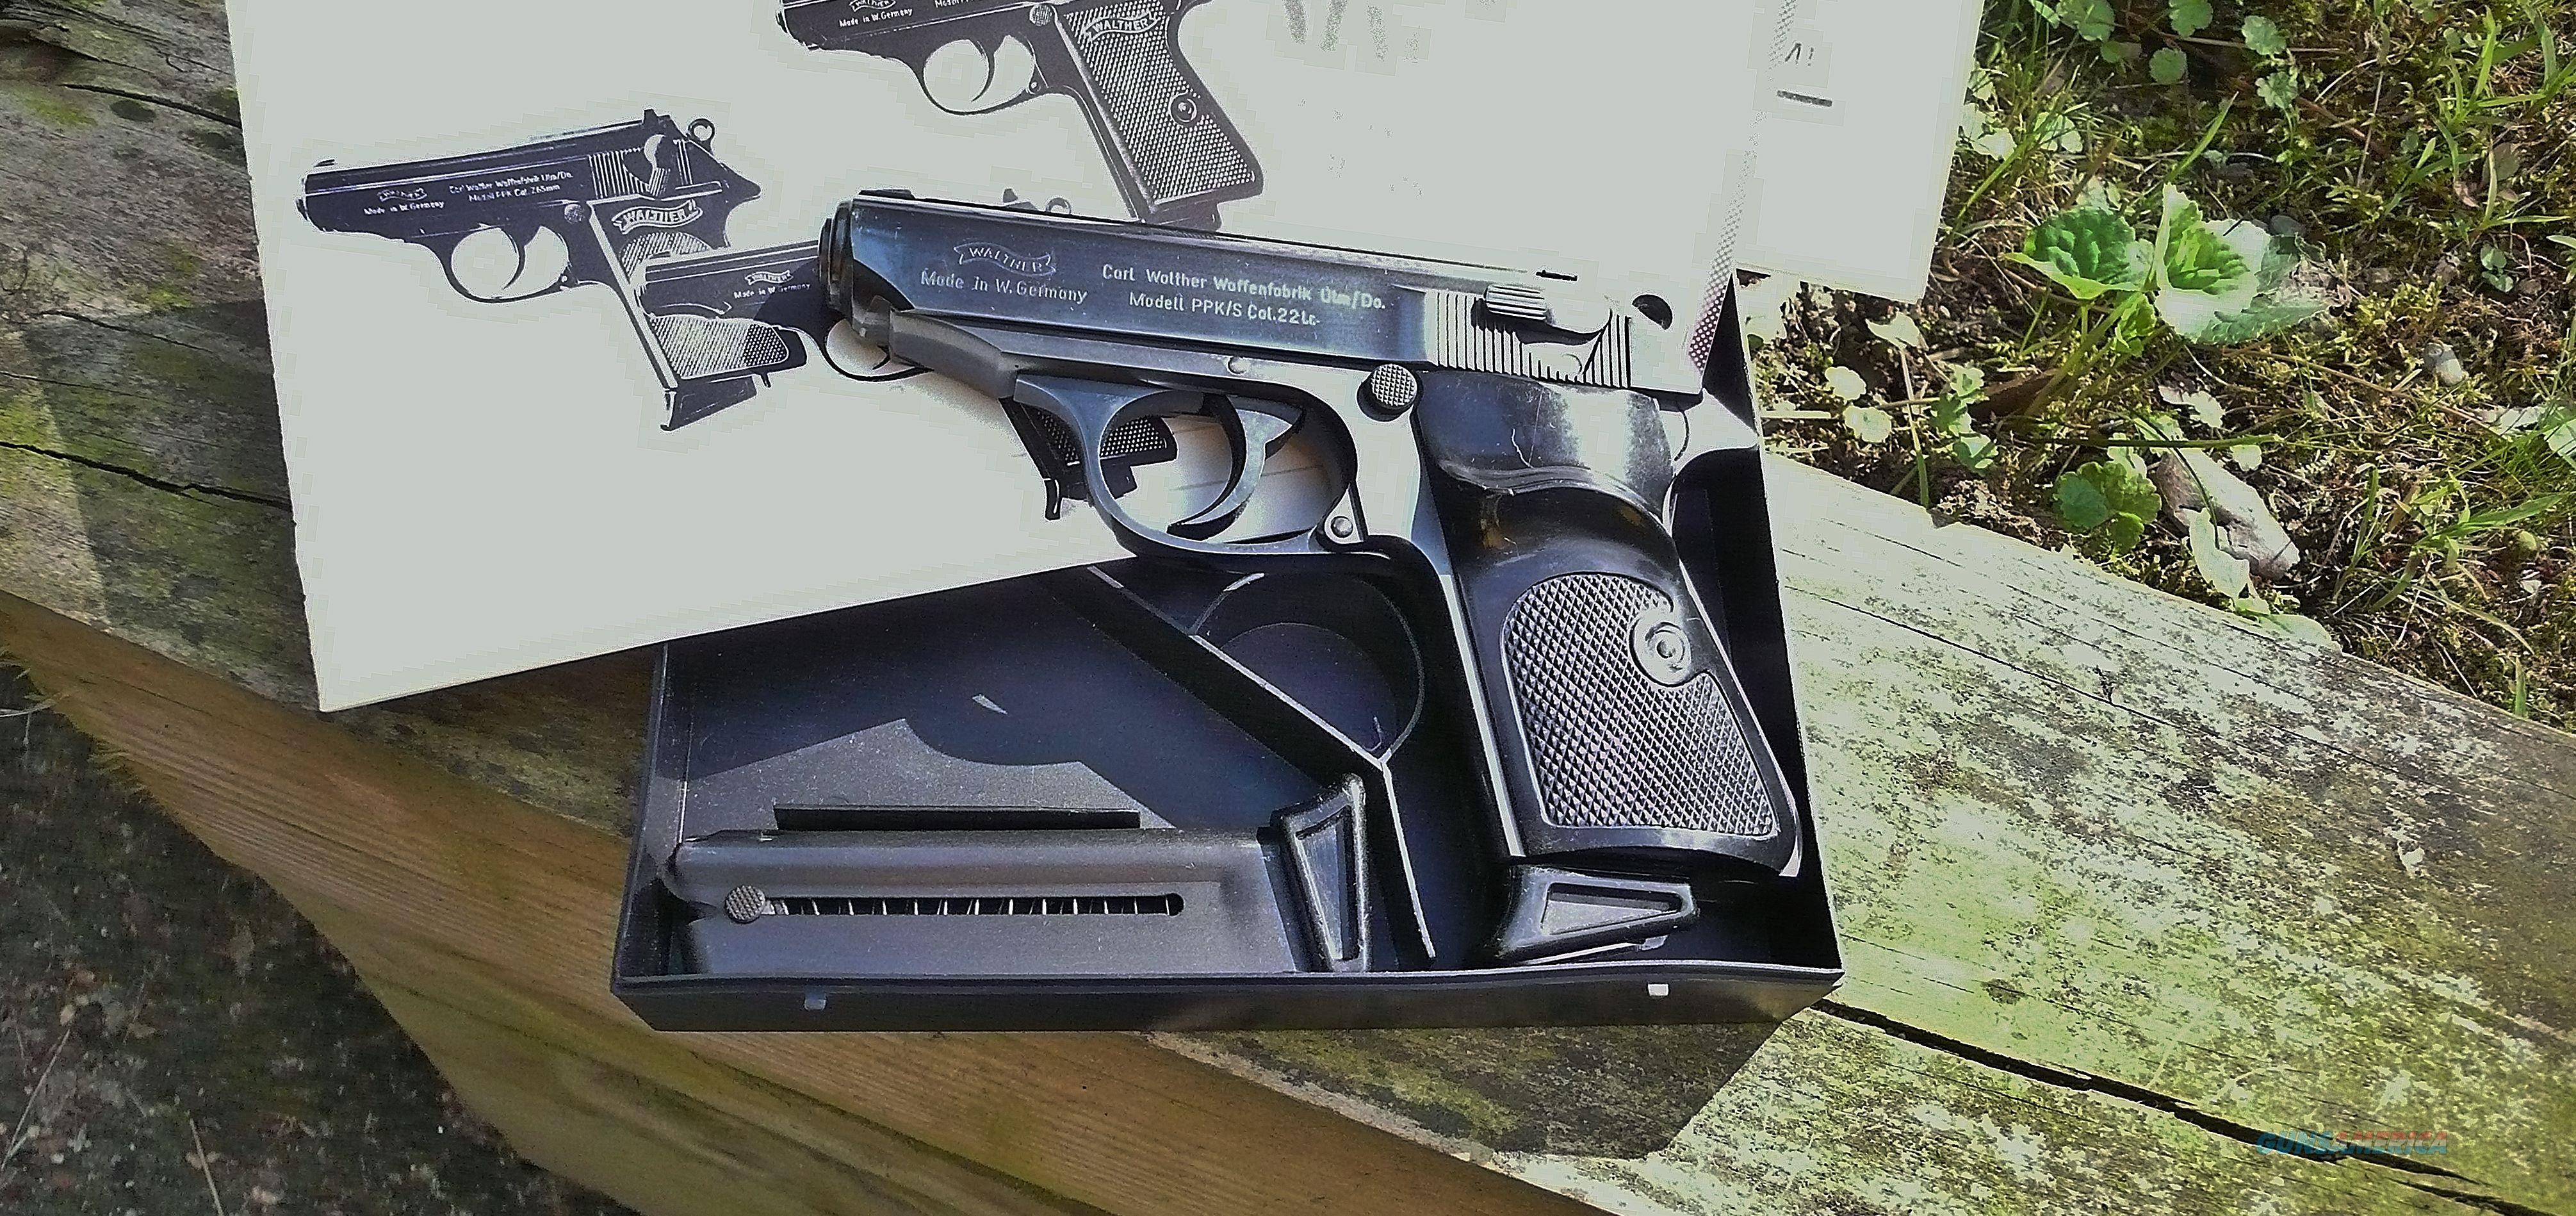 FS  W. German Walther PPK/S 22lr  Guns > Pistols > Walther Pistols > Post WWII > PPK Series